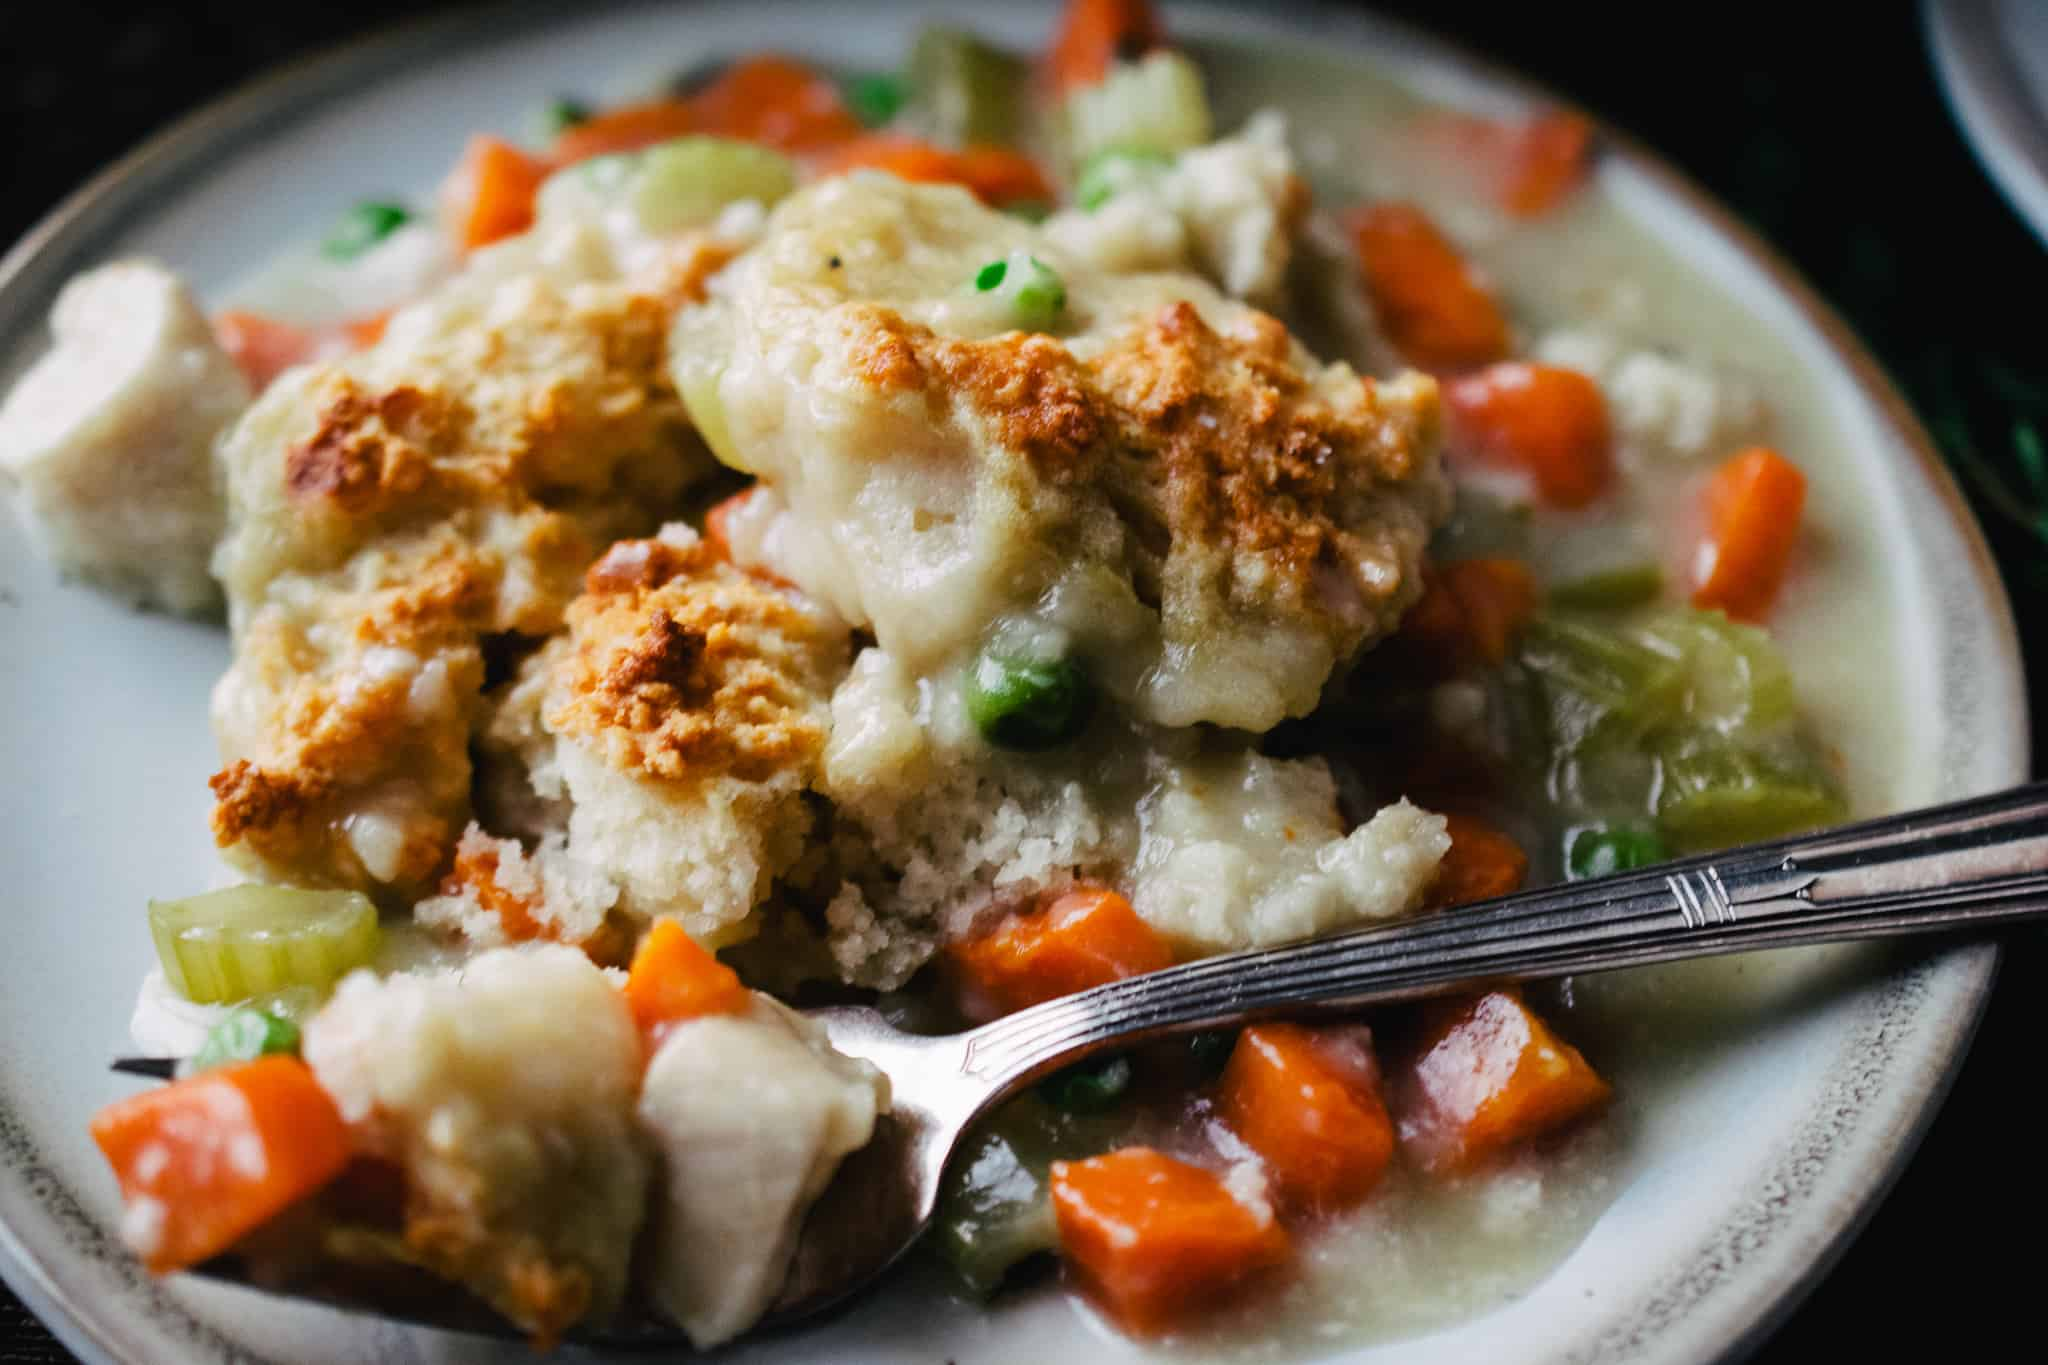 plate of creamy chicken and dumplings